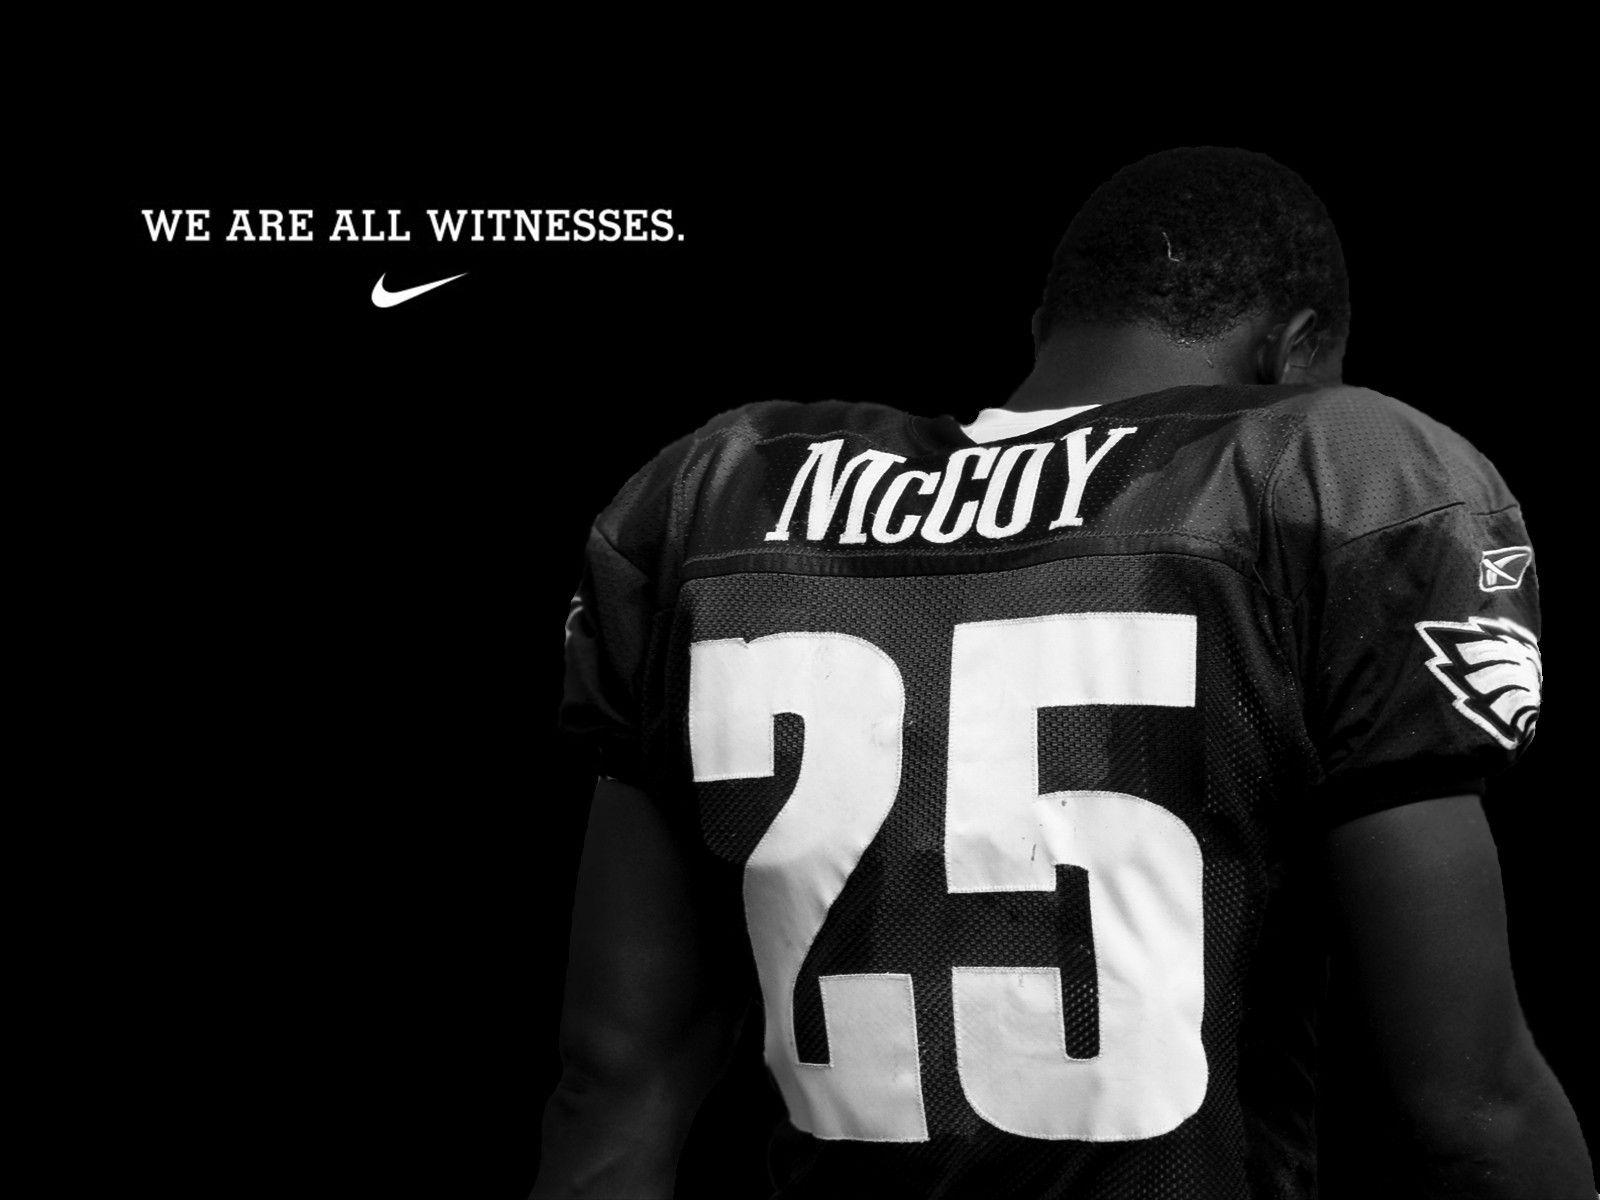 Here's a LeSean McCoy wallpapers I made in a photo